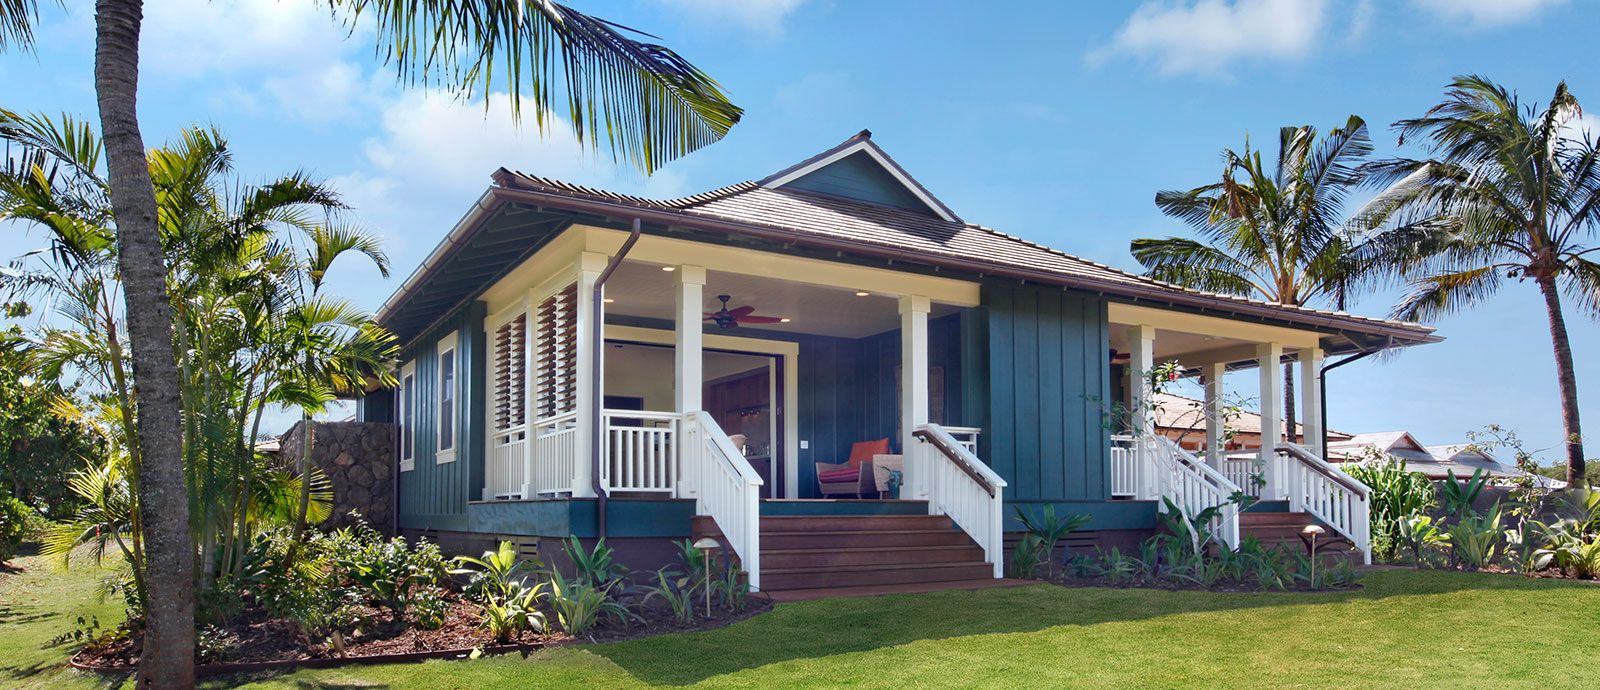 1 bedroom club bungalow kukuiula cottage bungalow luxury rh pinterest com